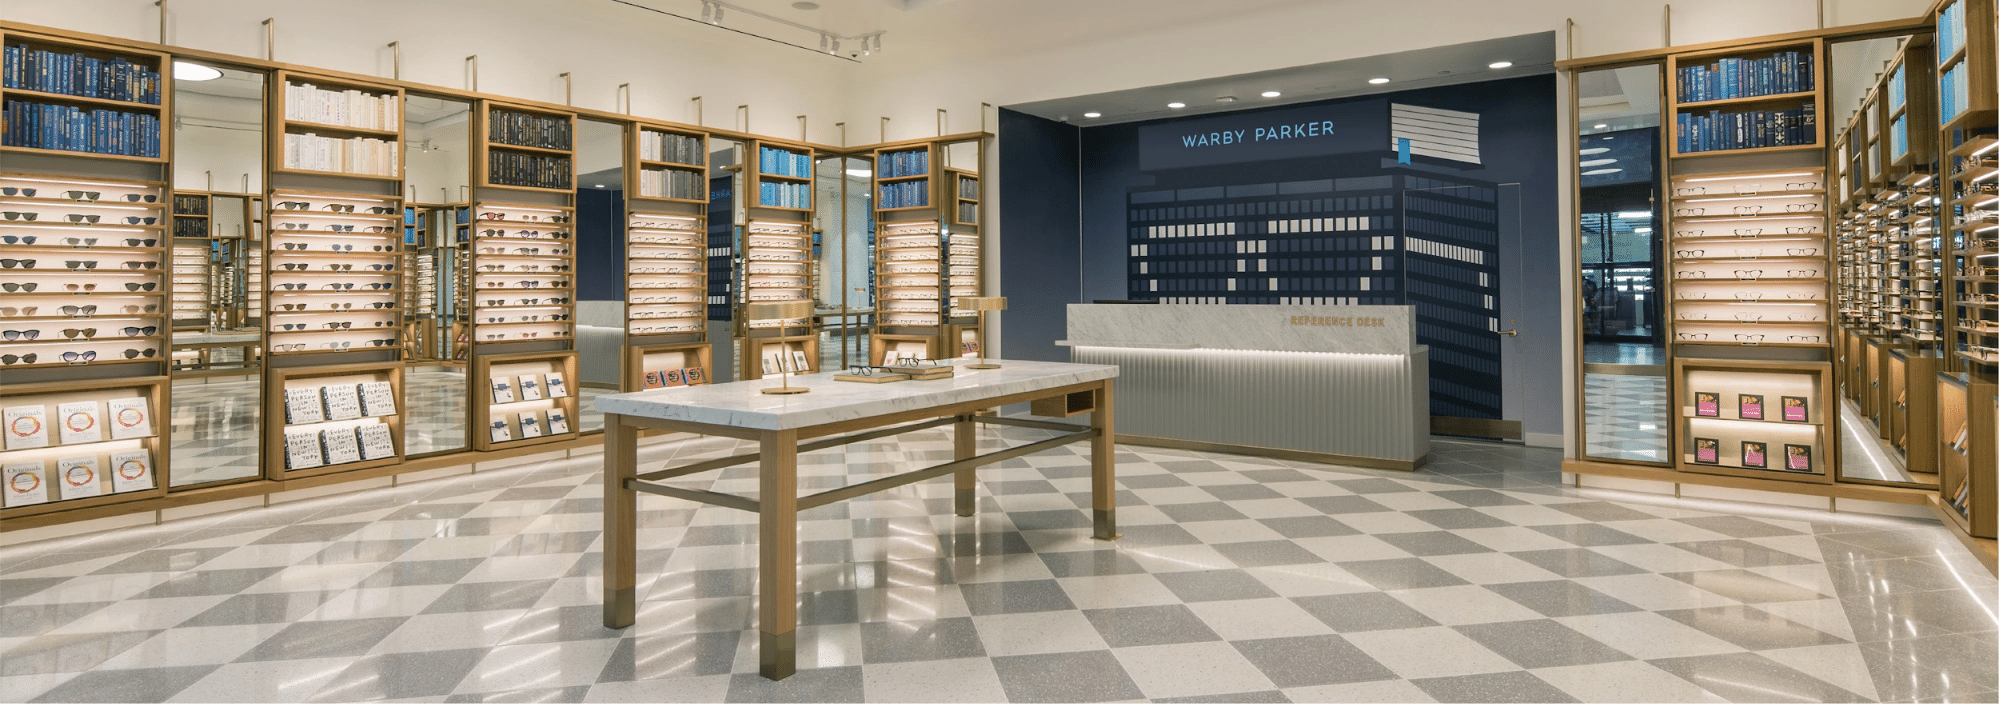 Warby Parker is bringing back furloughed staff as it reopens more stores